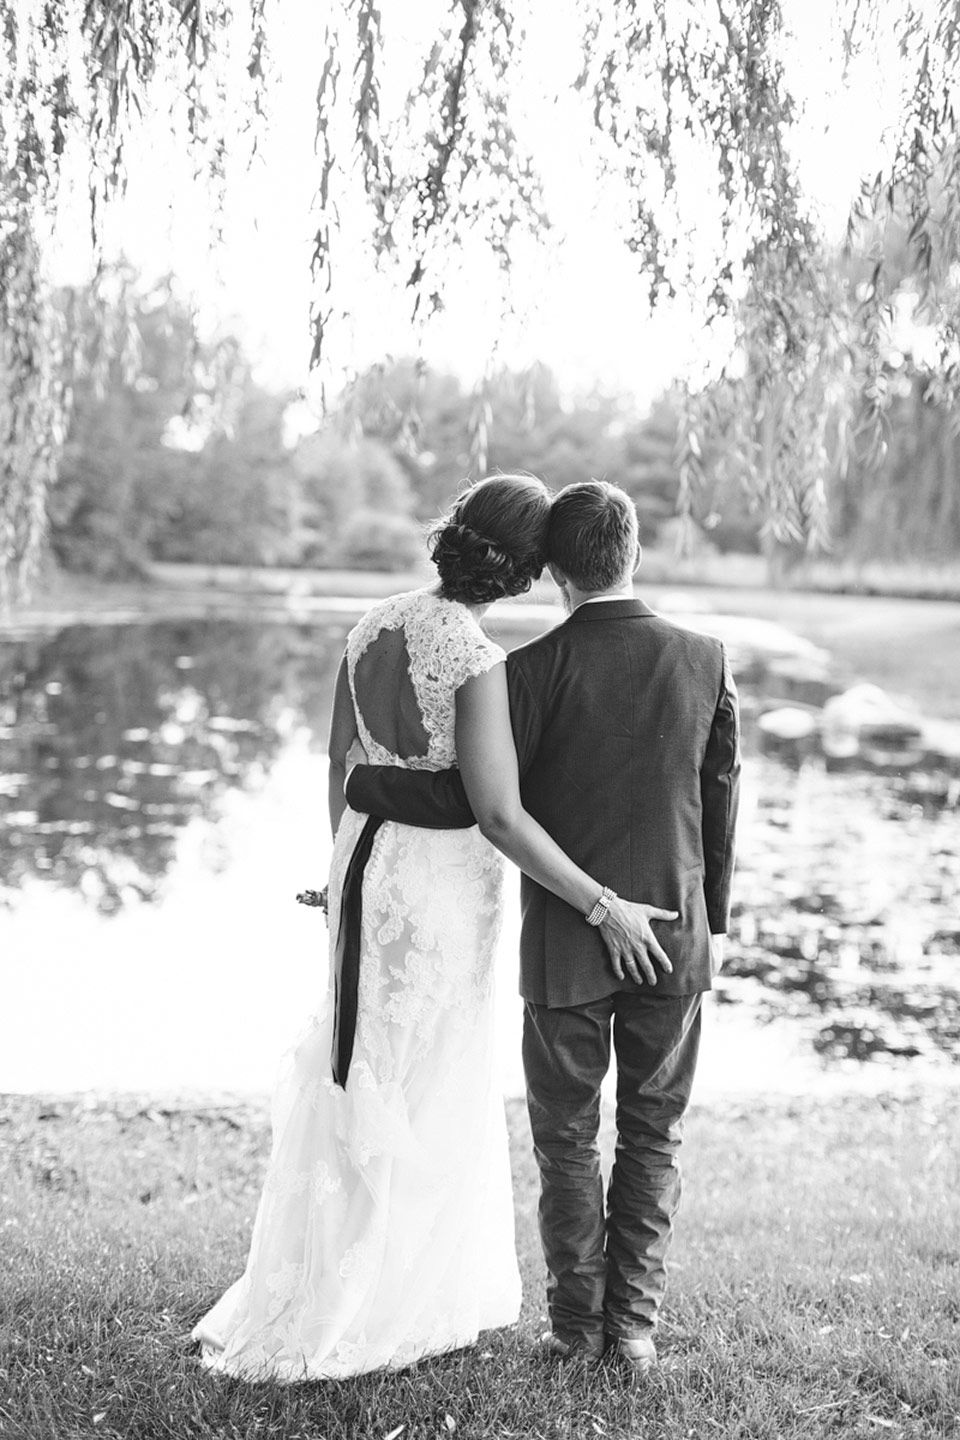 willow.pond.wisconsin.barn.wedding.venue.photo.010